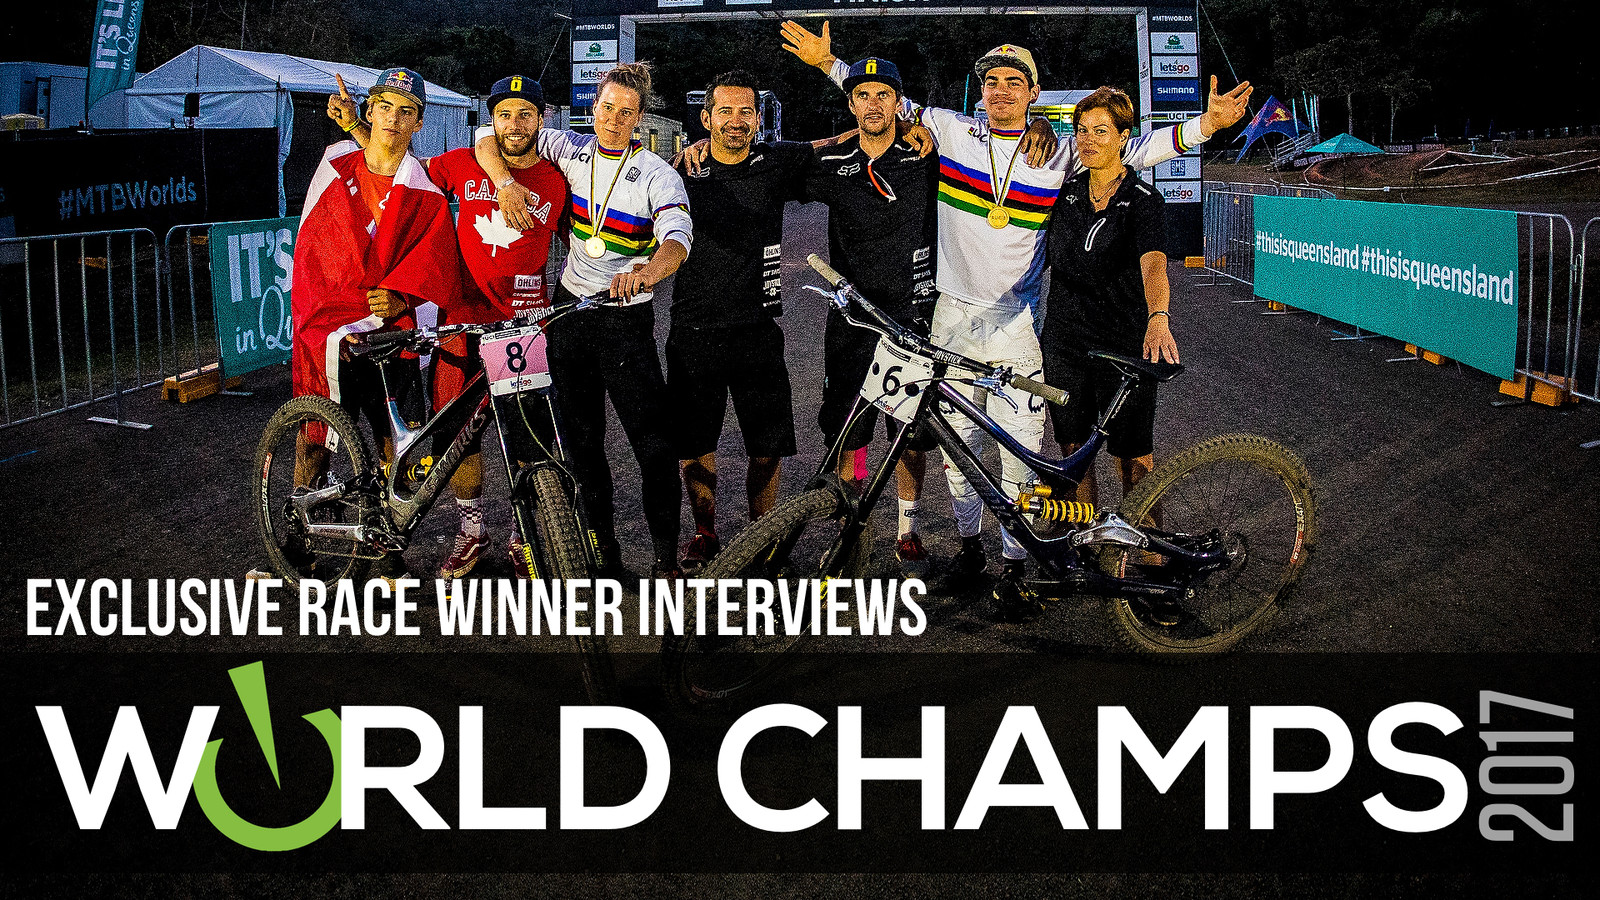 Exclusive 2017 DH World Champion Interviews